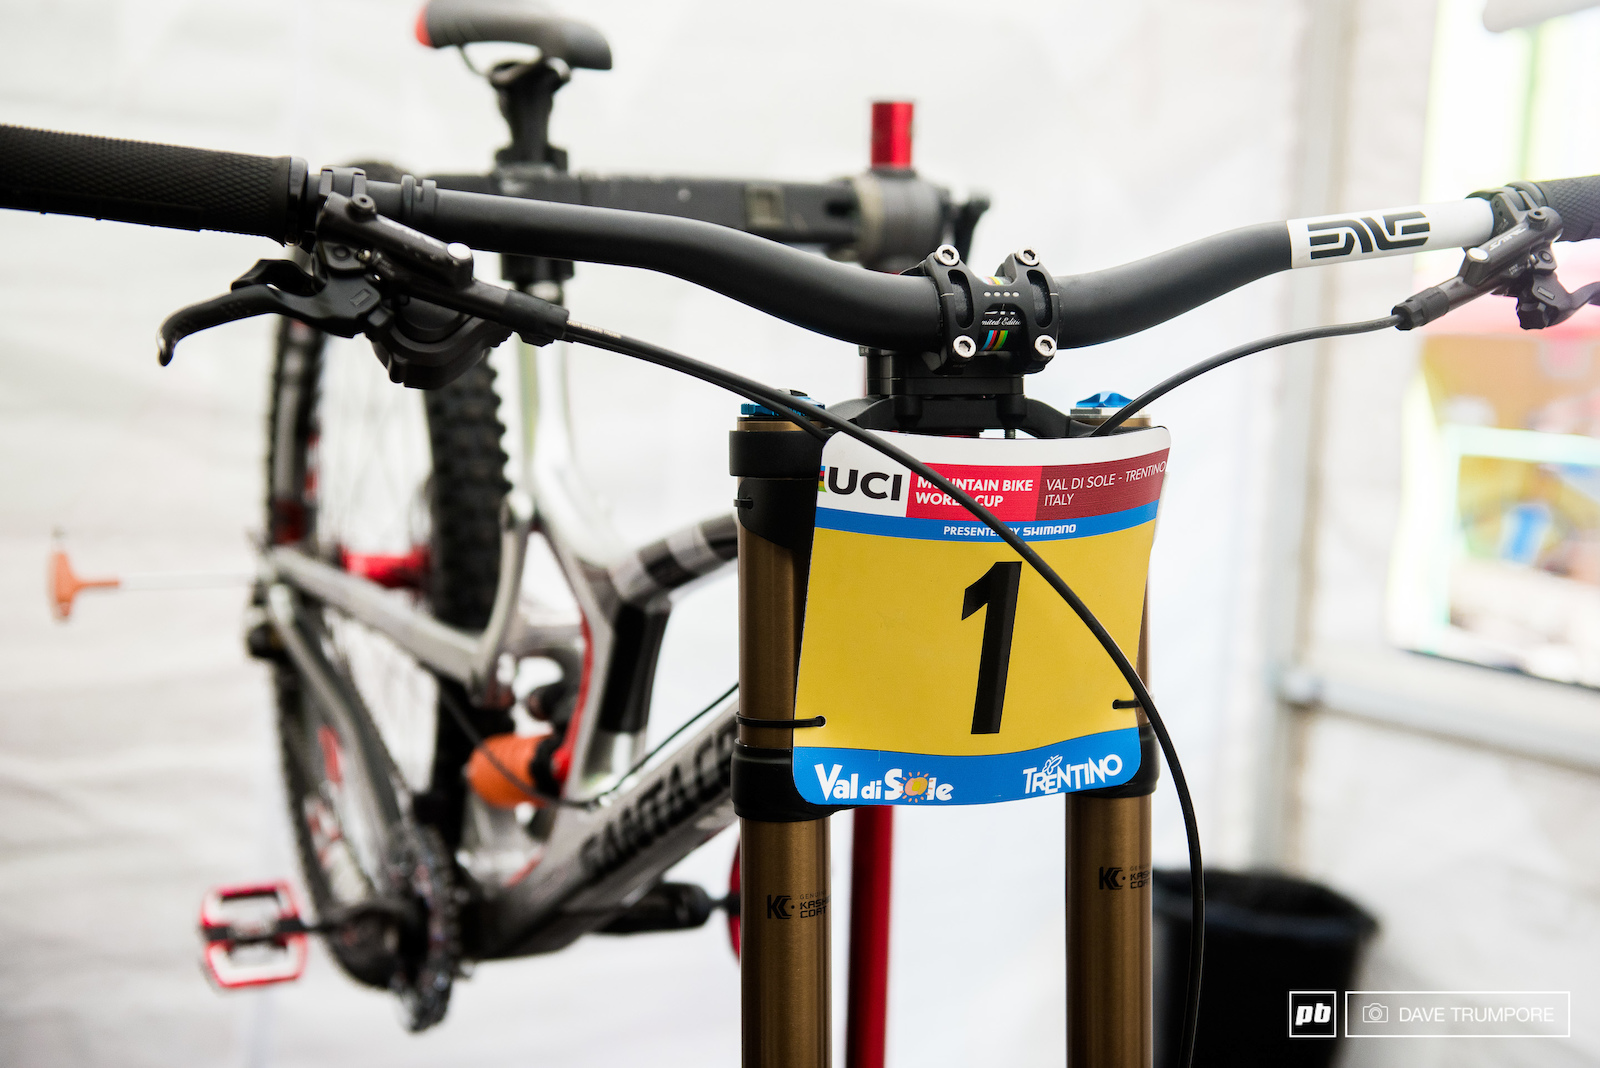 There are barely any points to spare if Greg Minnaar wants to leave Val di Sole with this number plate.